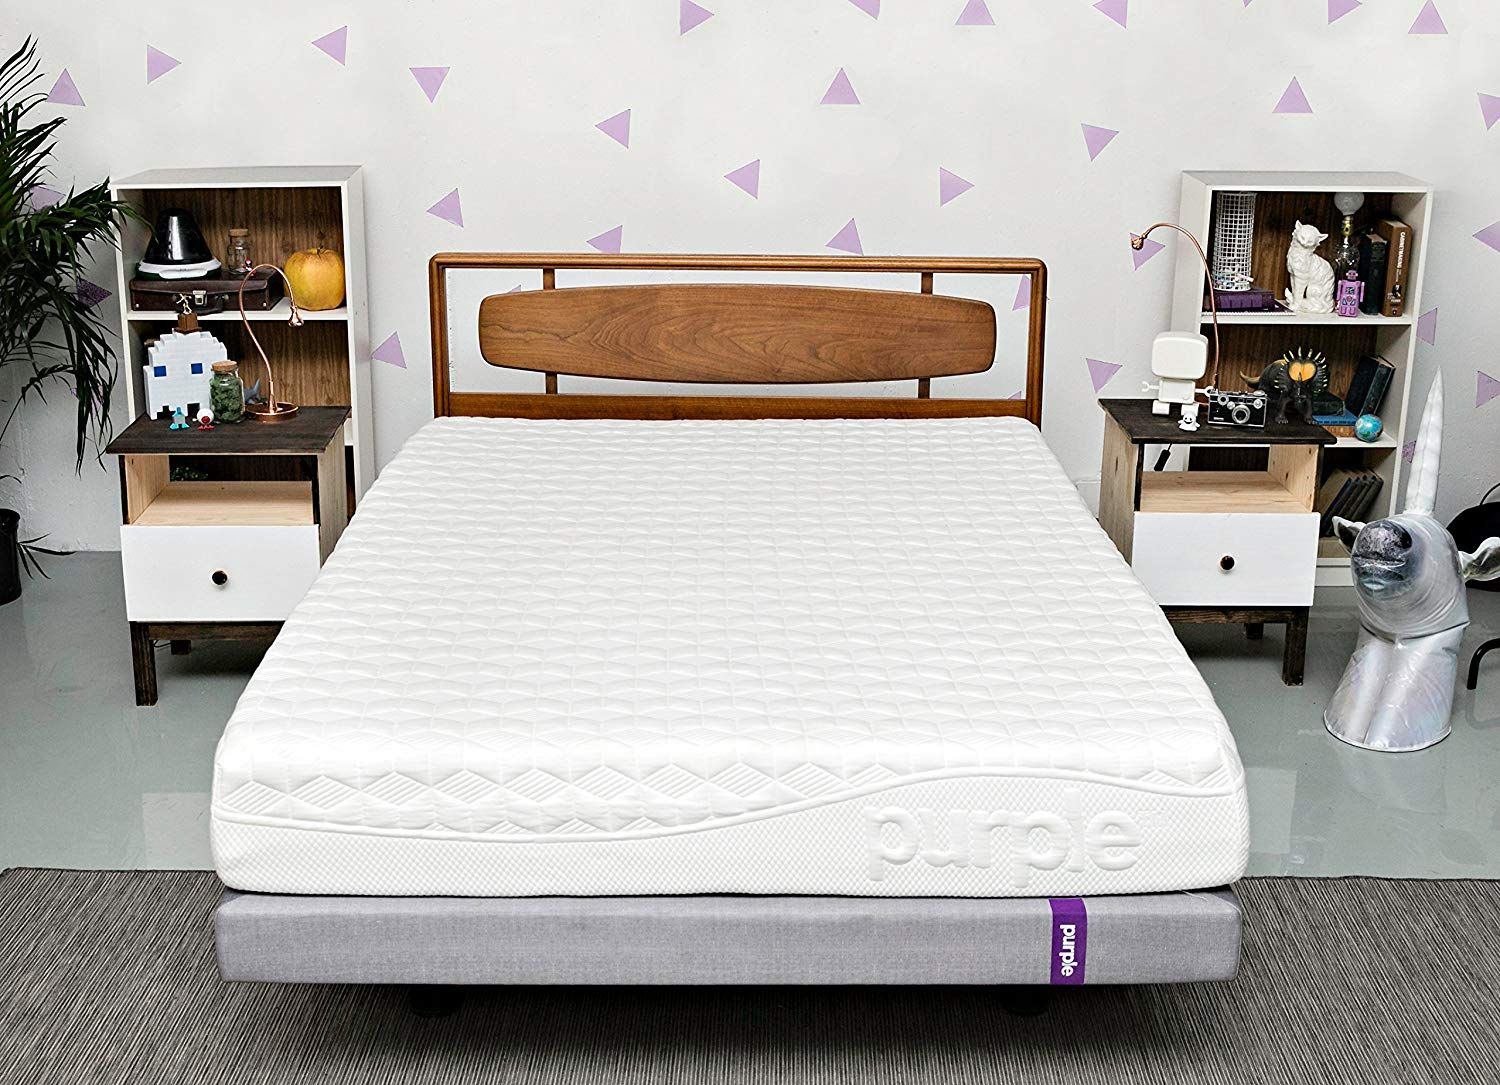 Best Memory Foam Mattresses Purple queen mattress, King